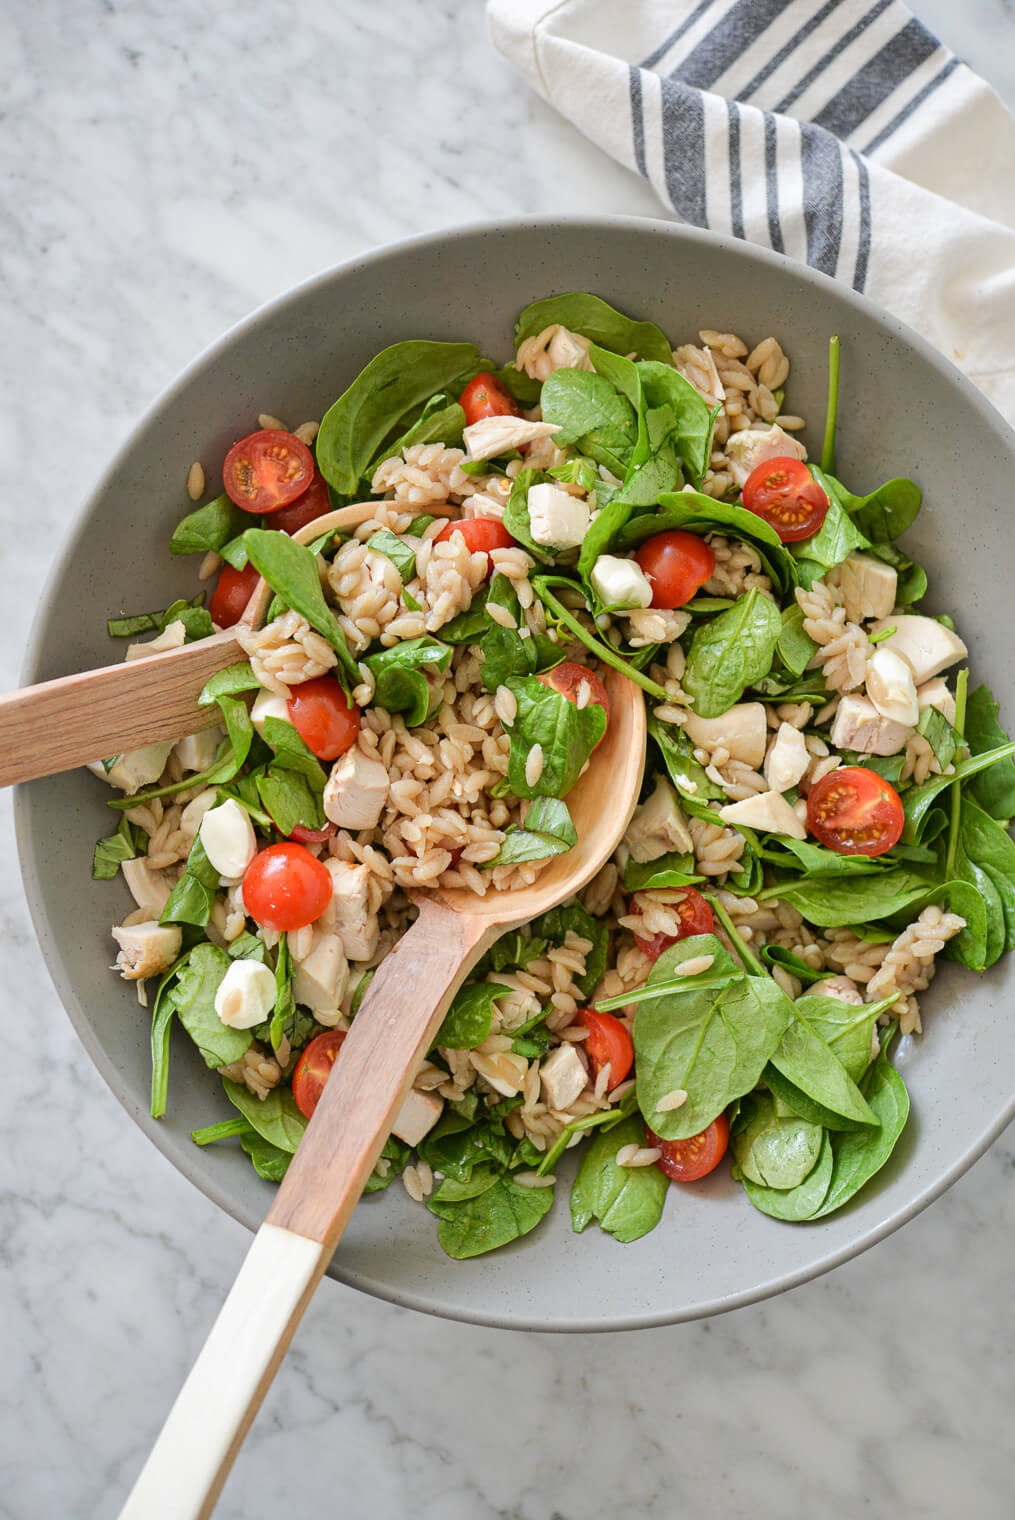 a large gray bowl filled with orzo, cherry tomatoes, spinach, mozzarella pearls, and chicken with two wooden serving spoons on a marble surface